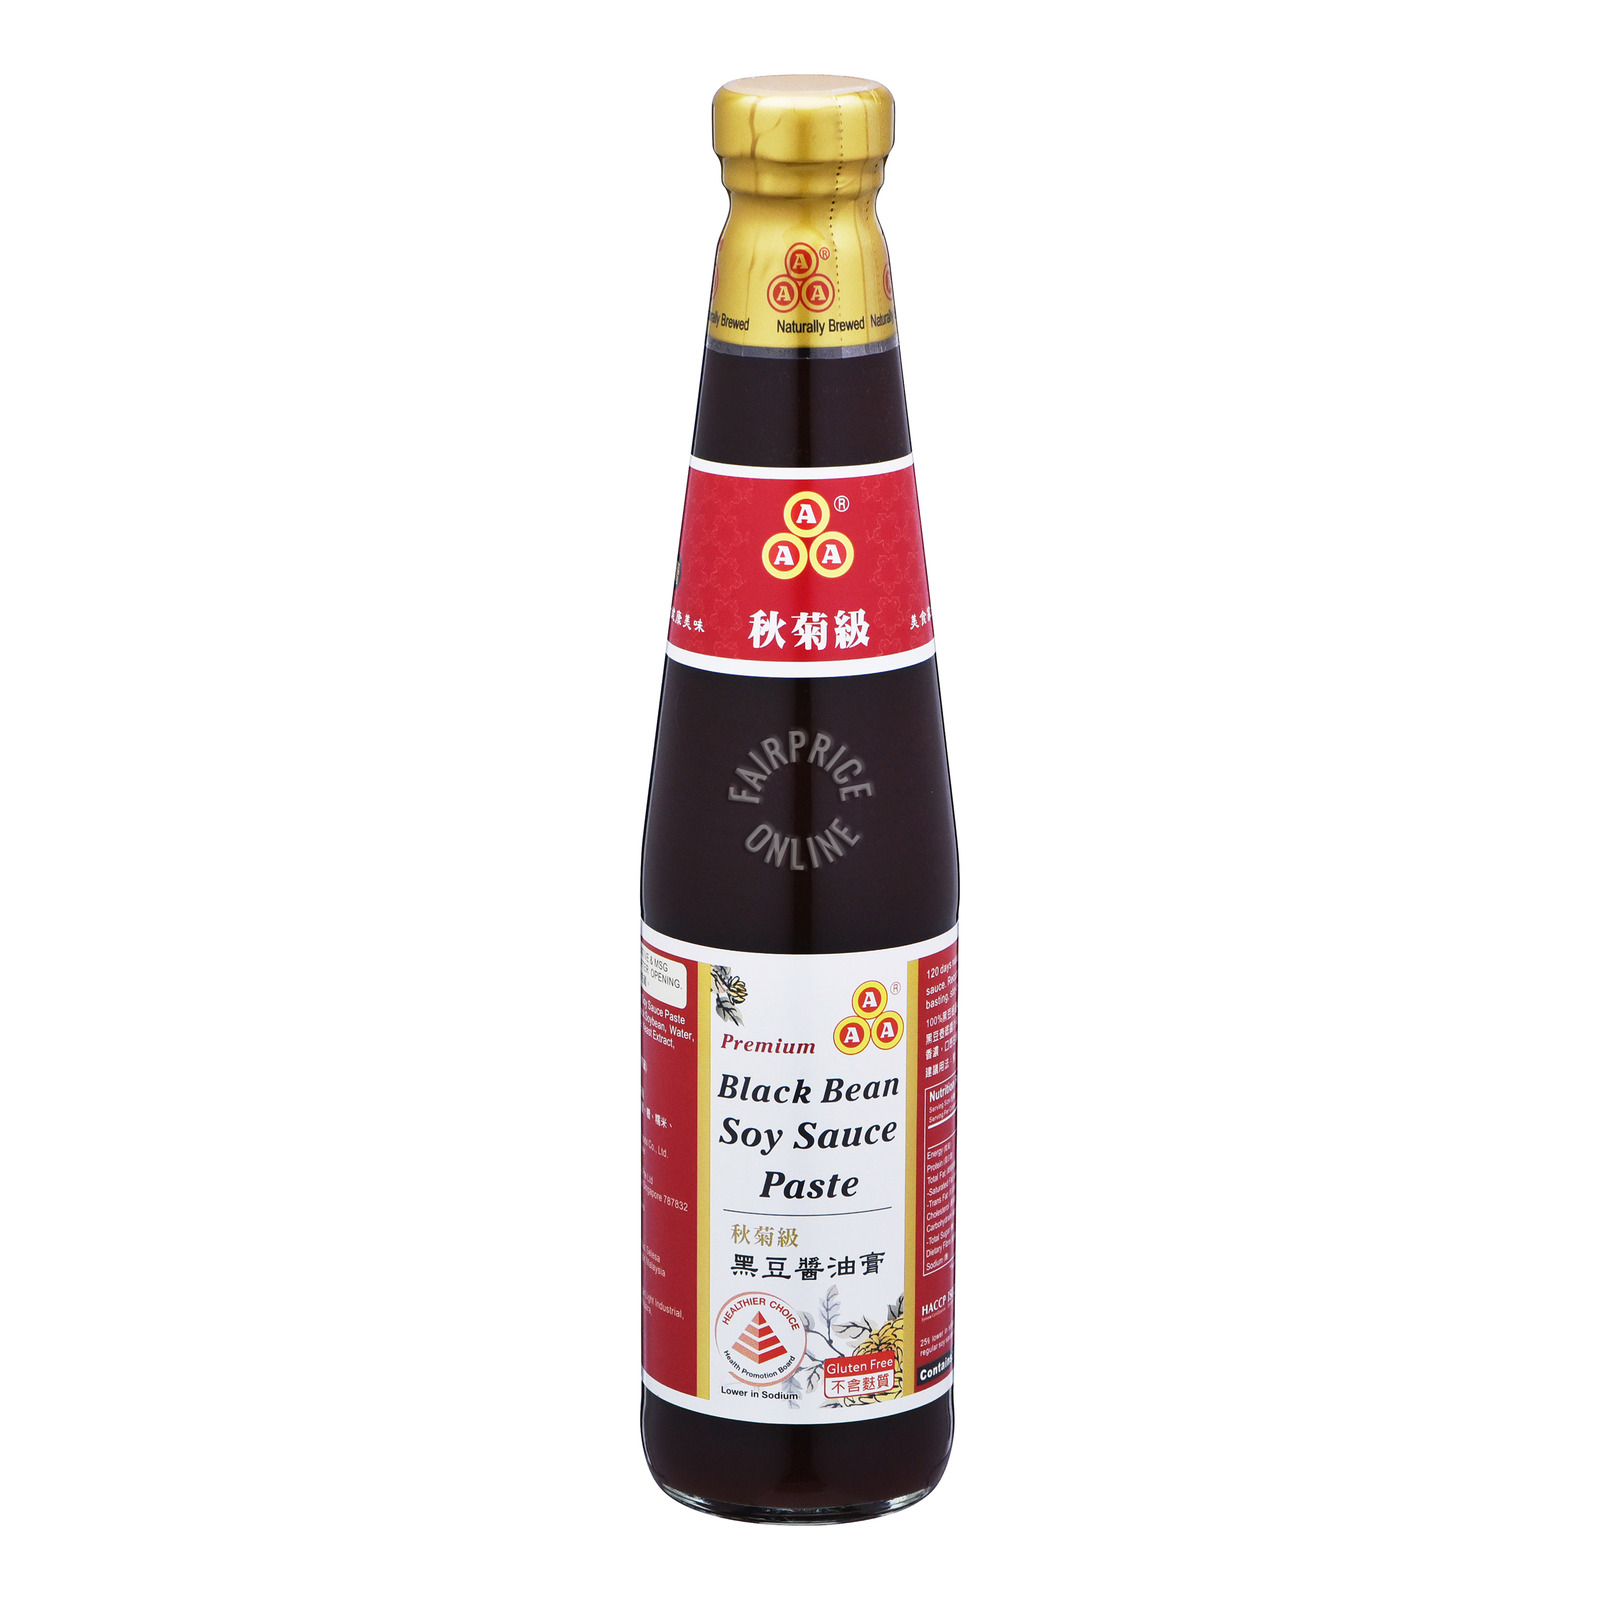 AAA Premium Black Bean Soy Sauce Paste